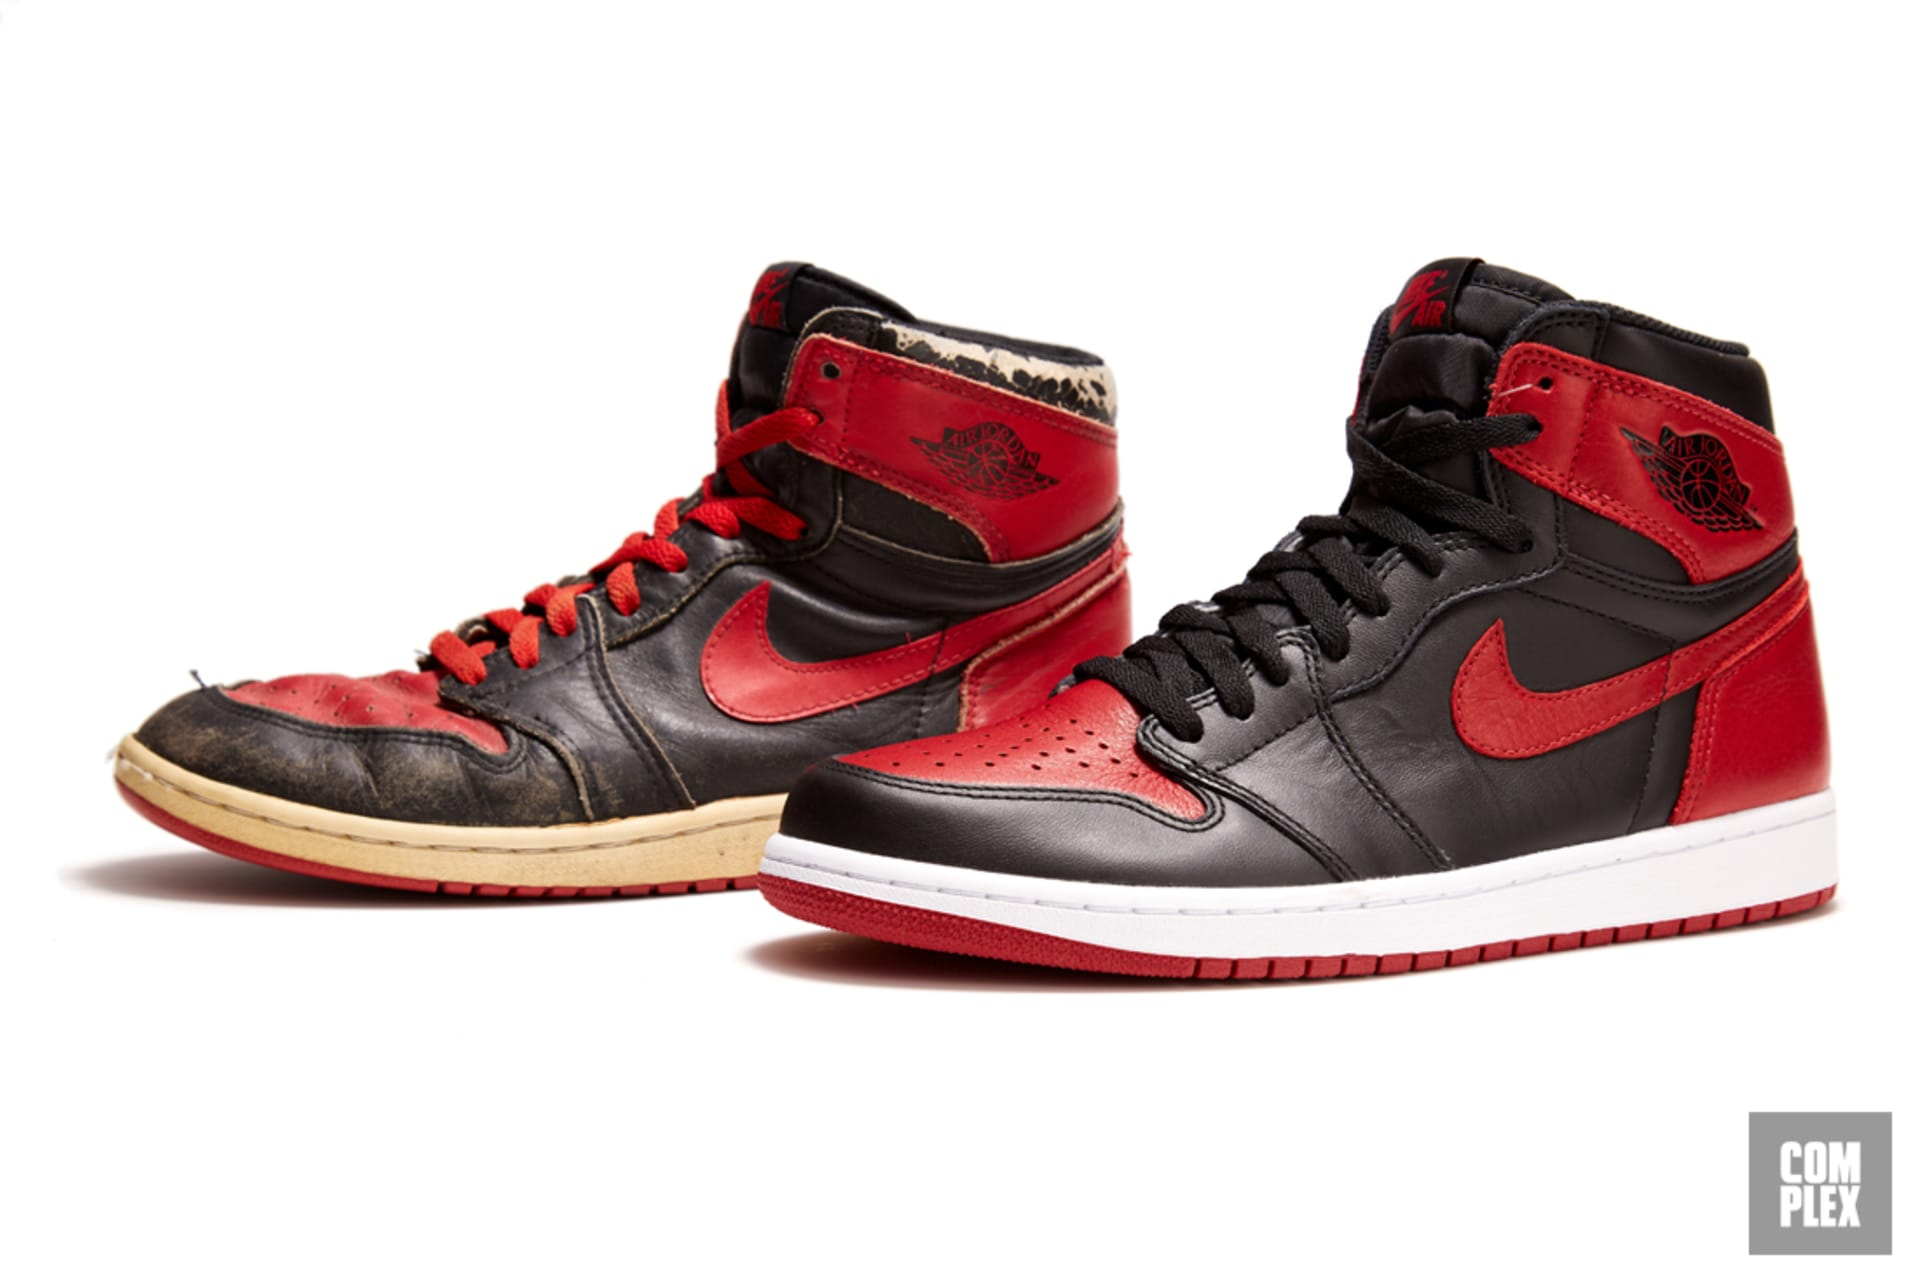 0f0136b7d38c The Evolution of the Black and Red Air Jordan 1